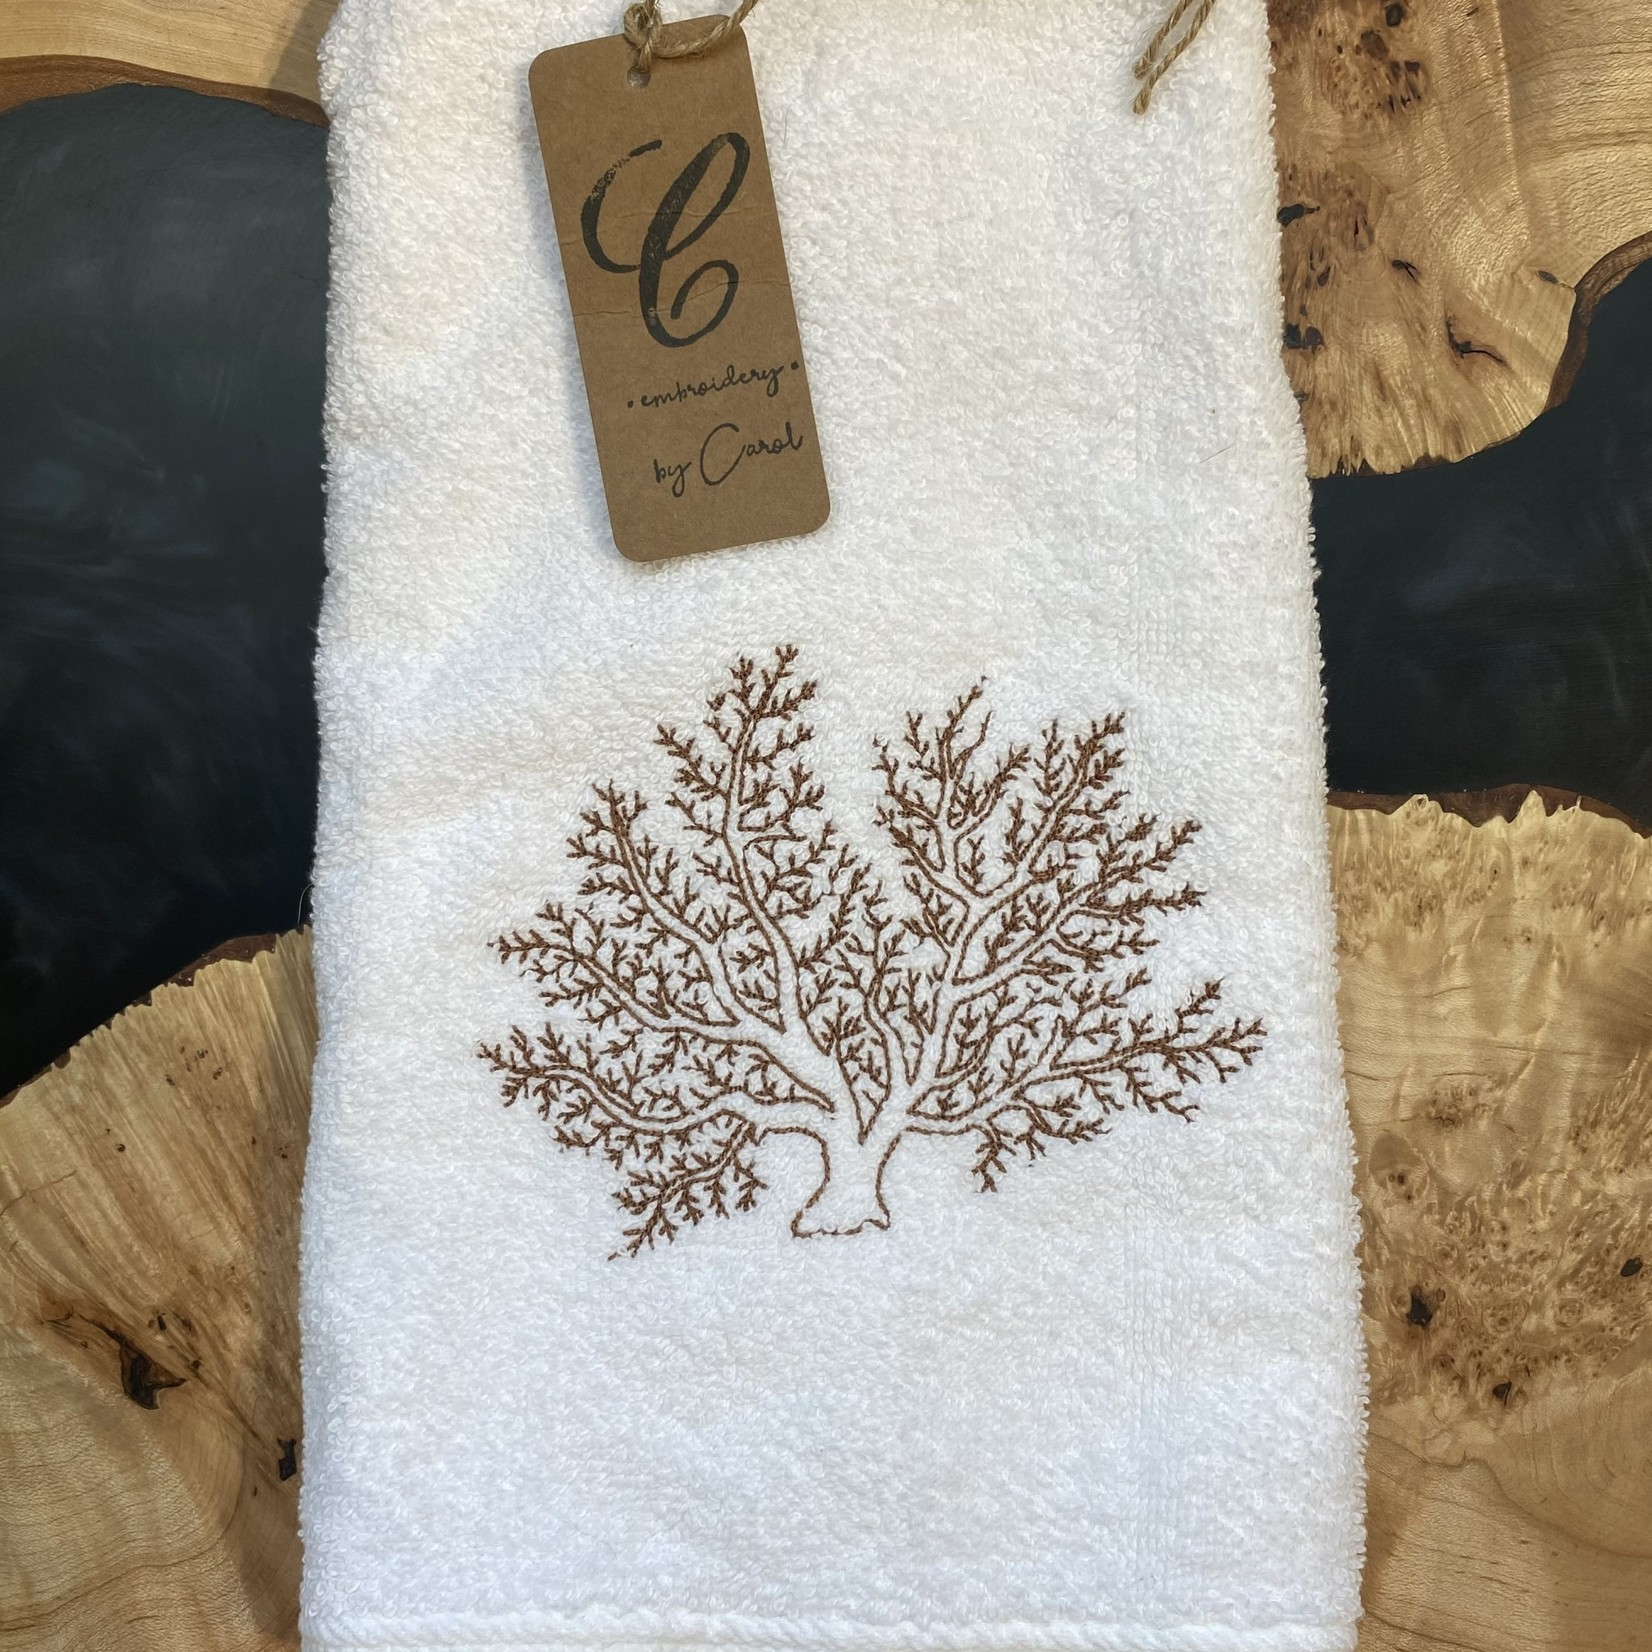 Handmade by Carol Handmade by Carol Hand Towel Brown Coral